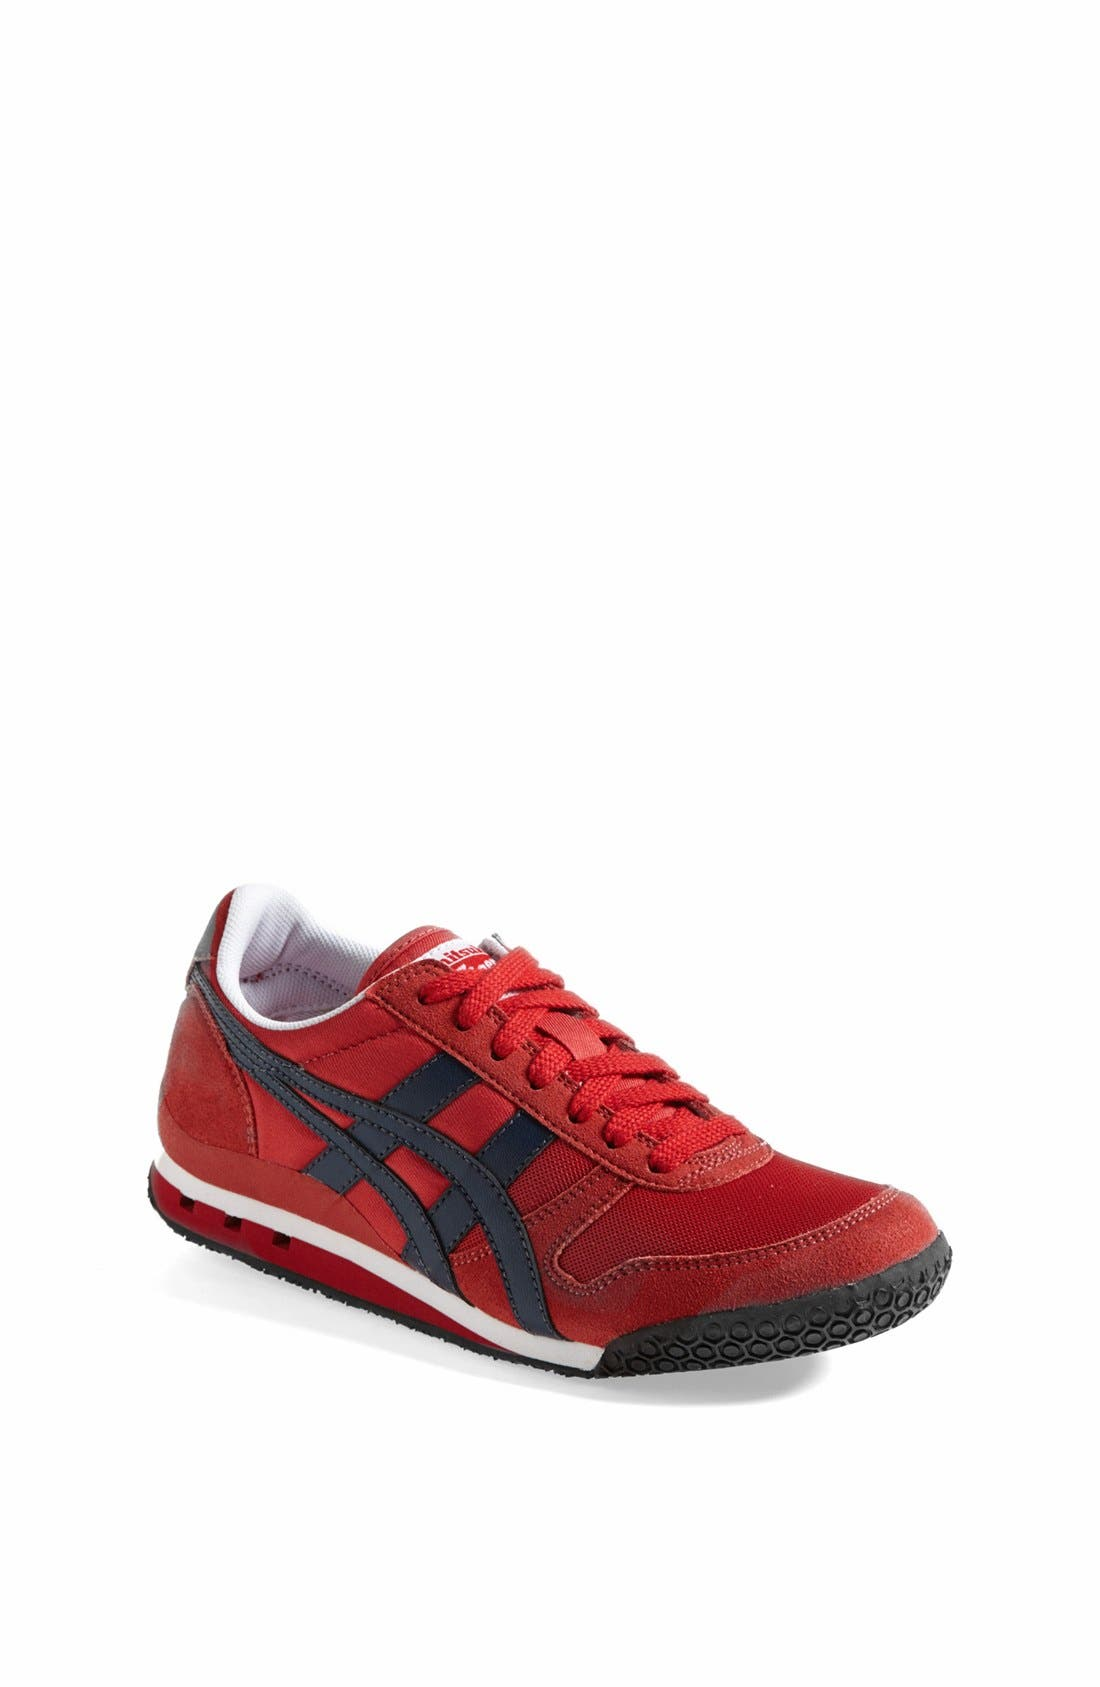 Main Image - Onitsuka Tiger™ 'Ultimate 81' Sneaker (Toddler, Little Kid & Big Kid)